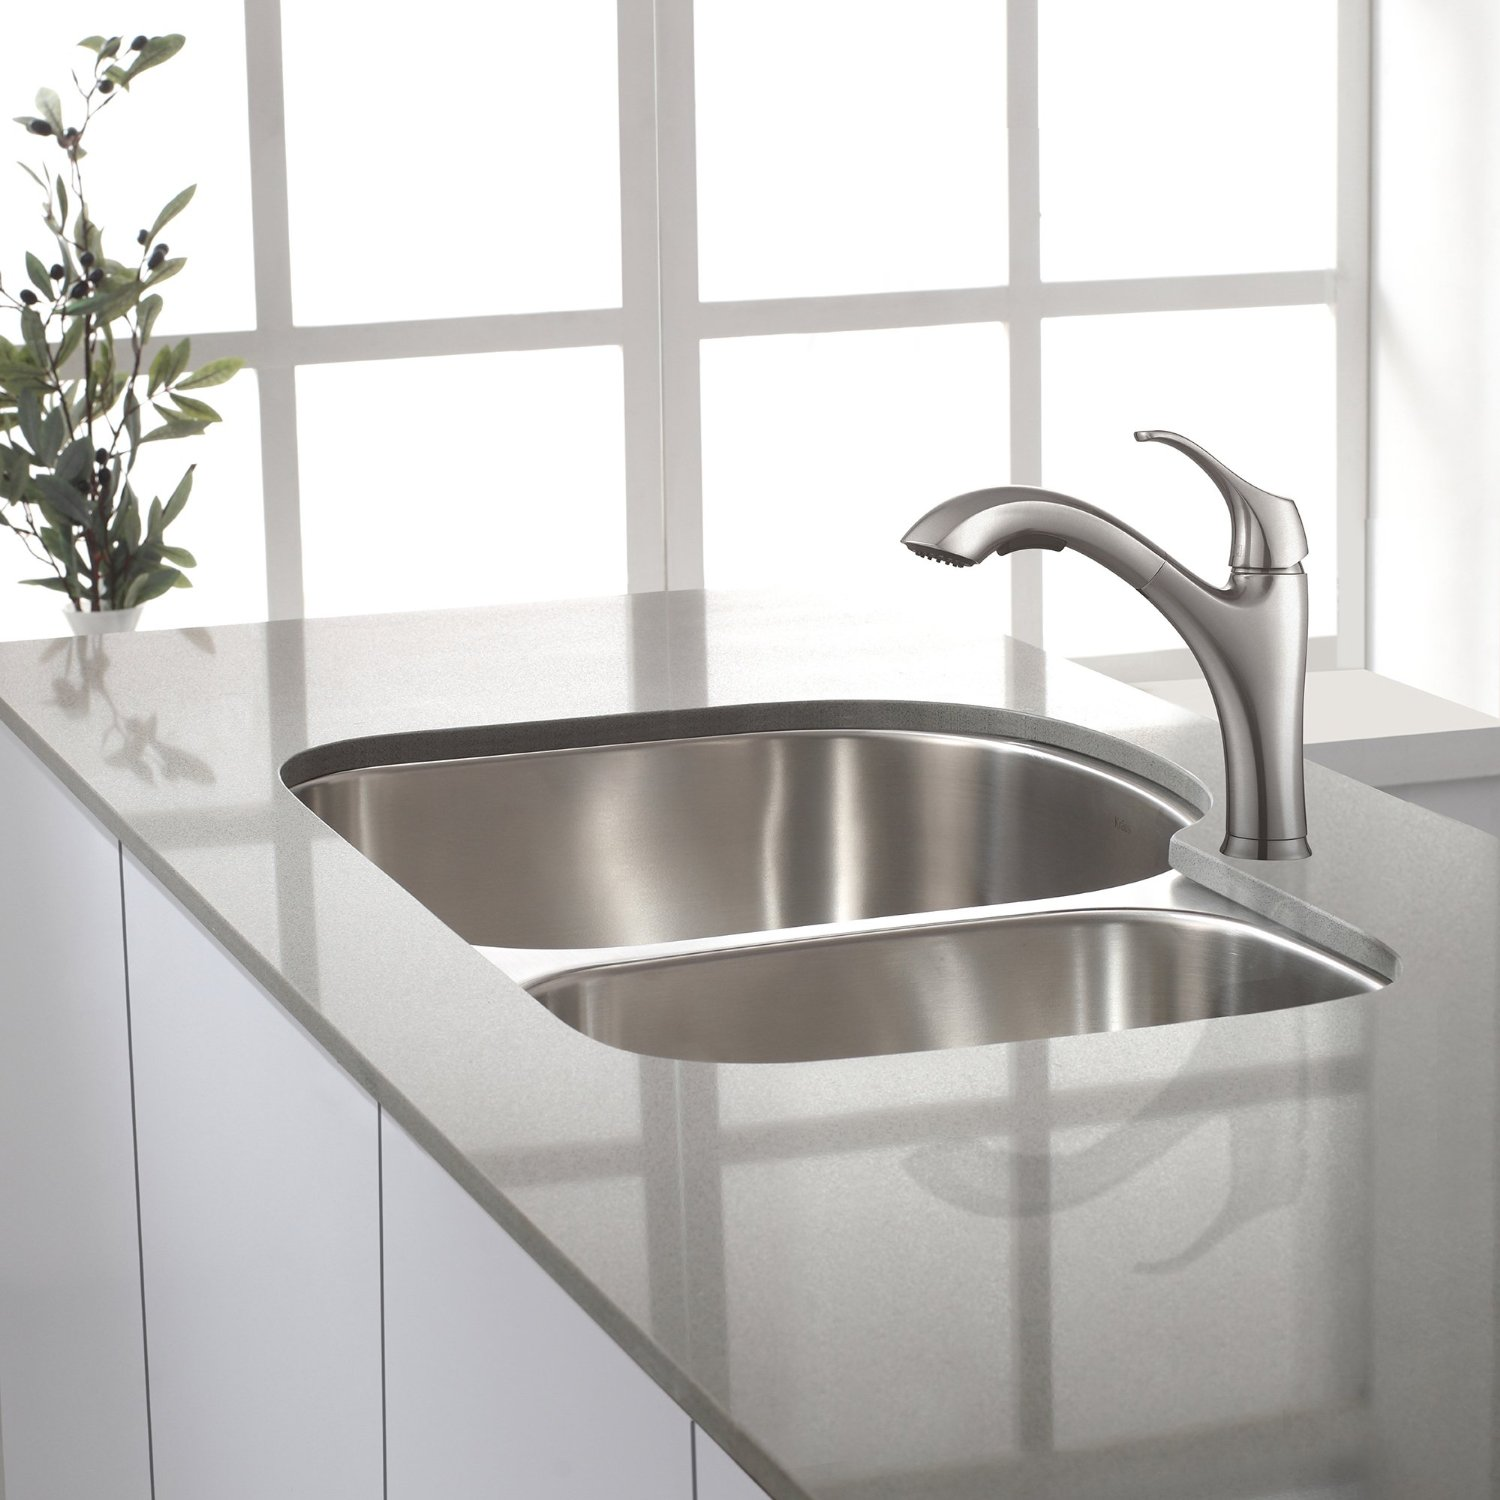 Kraus Kpf 2250 Design Top Faucets Reviewed